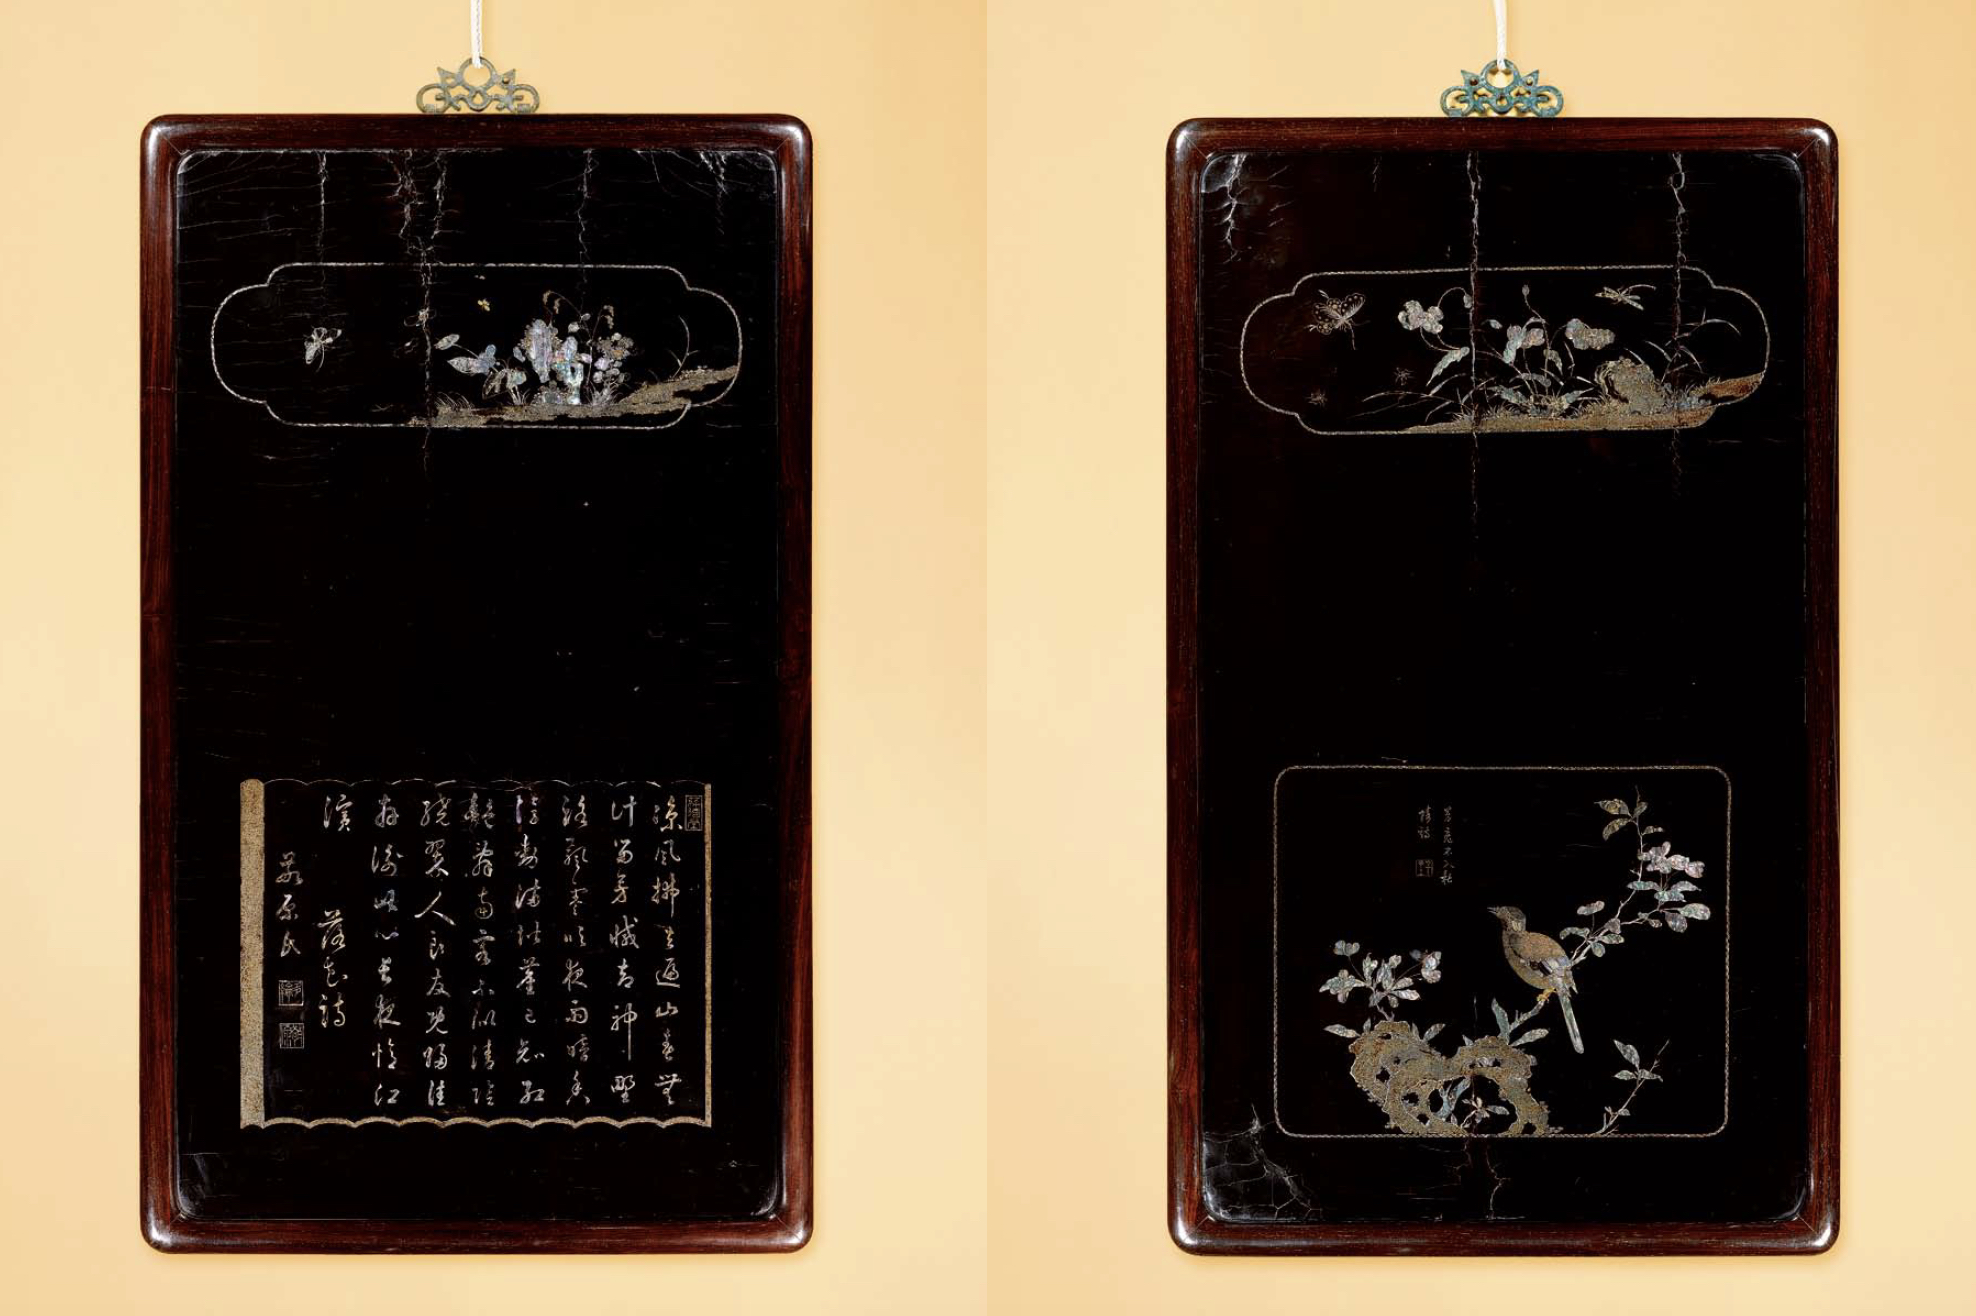 Two from a set of four mother-of-pearl inlaid panels, signed Jiang Qianli , Late Ming/early Qing period, 17th century, Dimensions: each 80cm high x 47cm wide